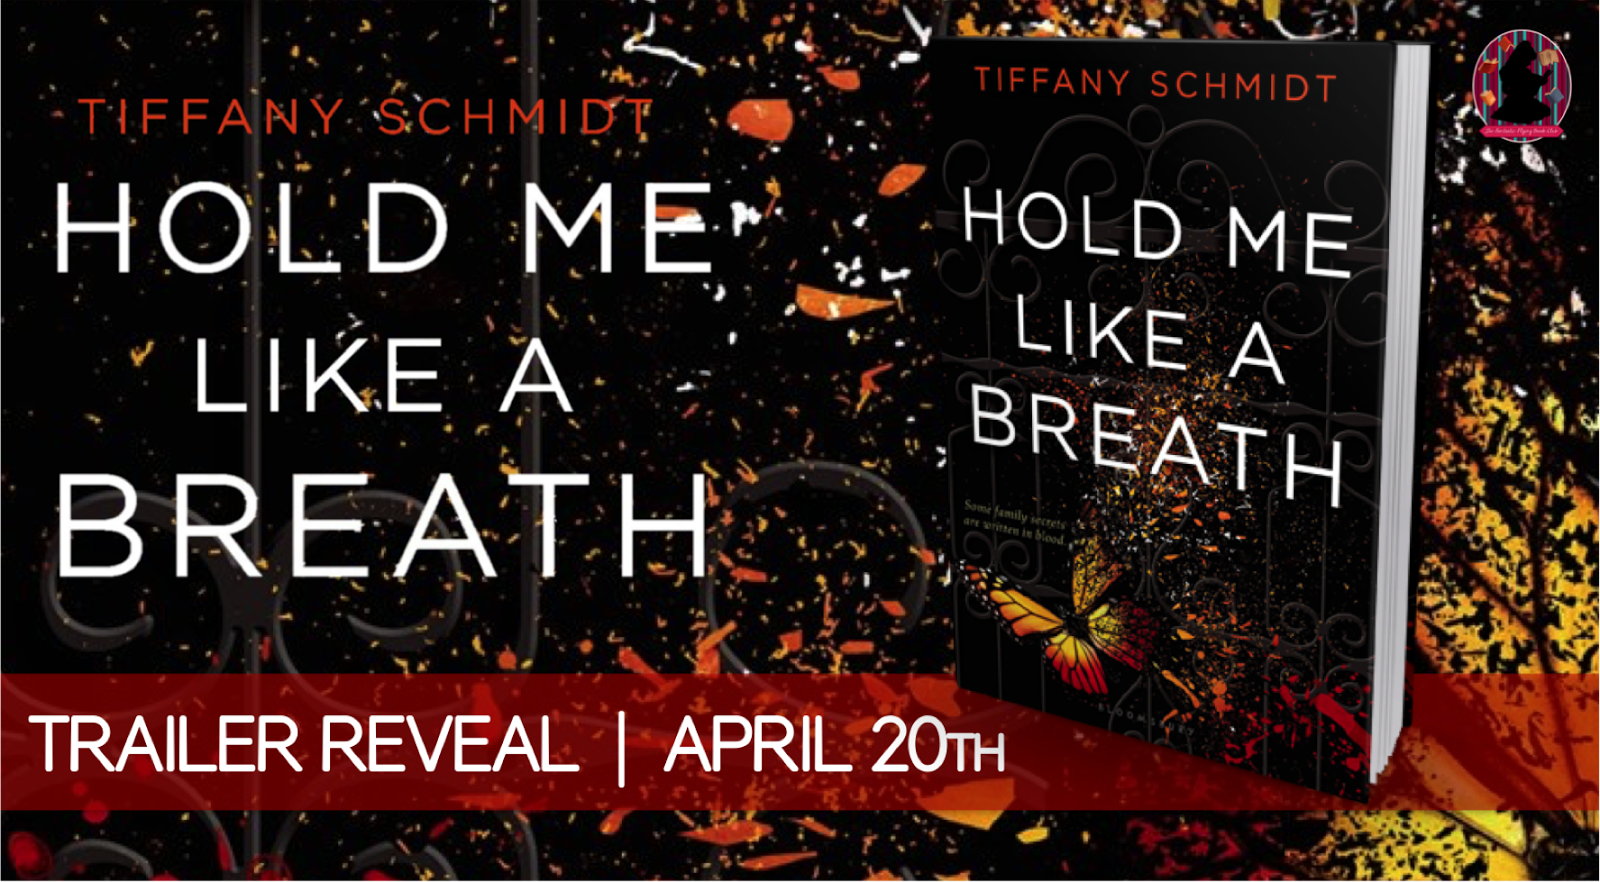 Trailer Reveal:  Hold Me Like a Breath by Tiffany Schmidt